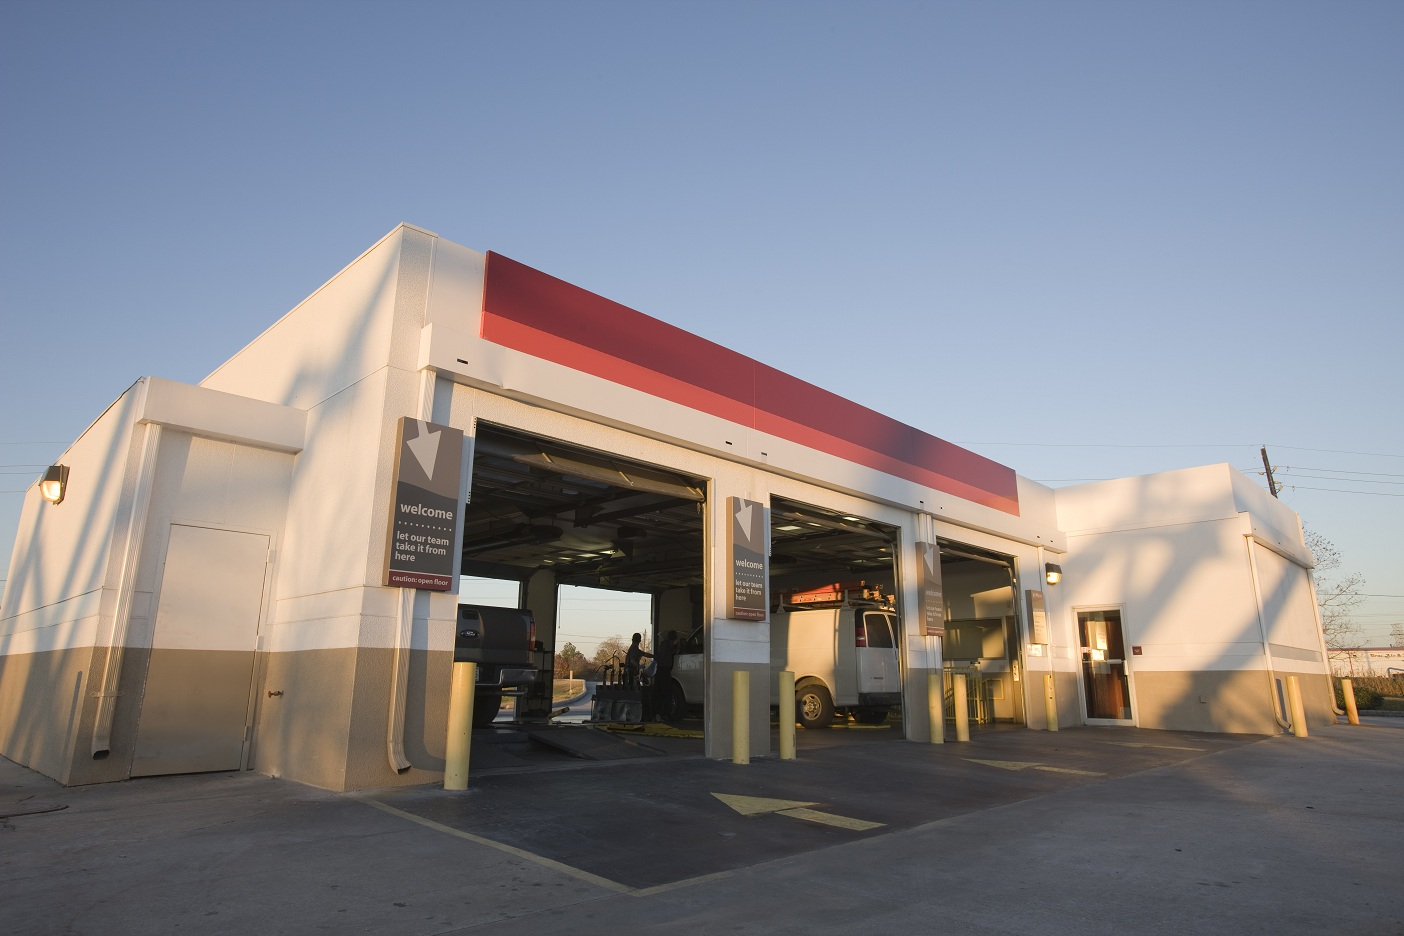 Jiffy Lube in Ontario, CA